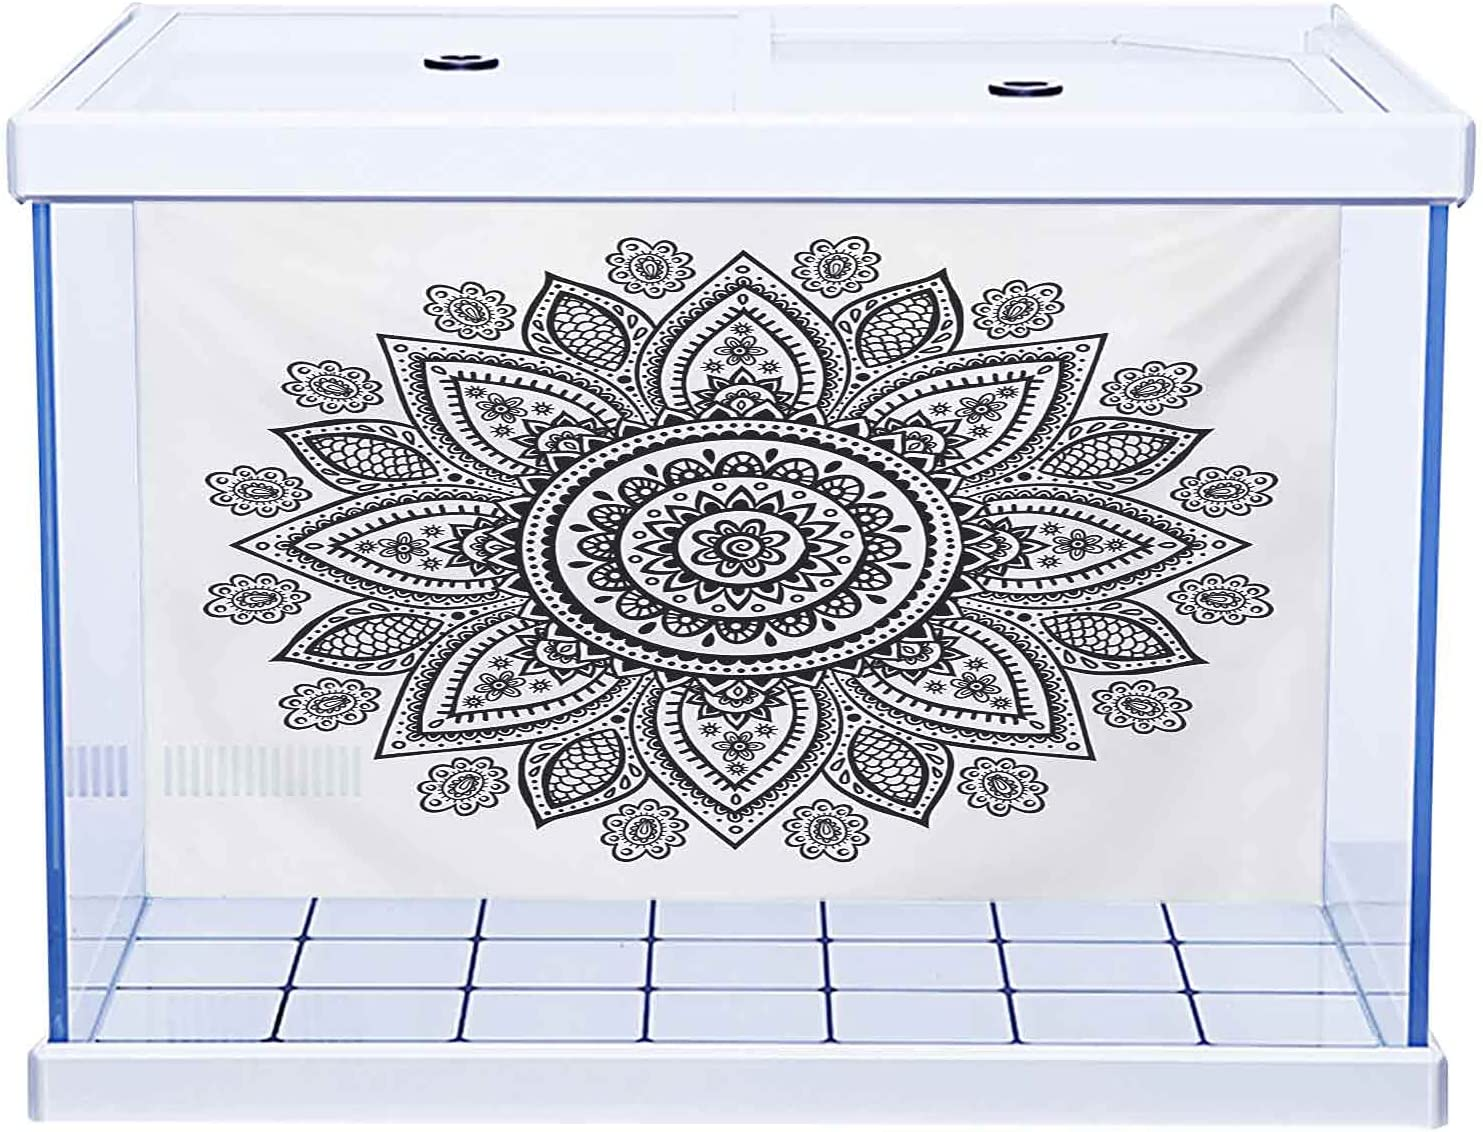 Aquarium Background Decoration ! Super beauty product restock quality top! Henna Floral 55% OFF Far Ornament Ar with